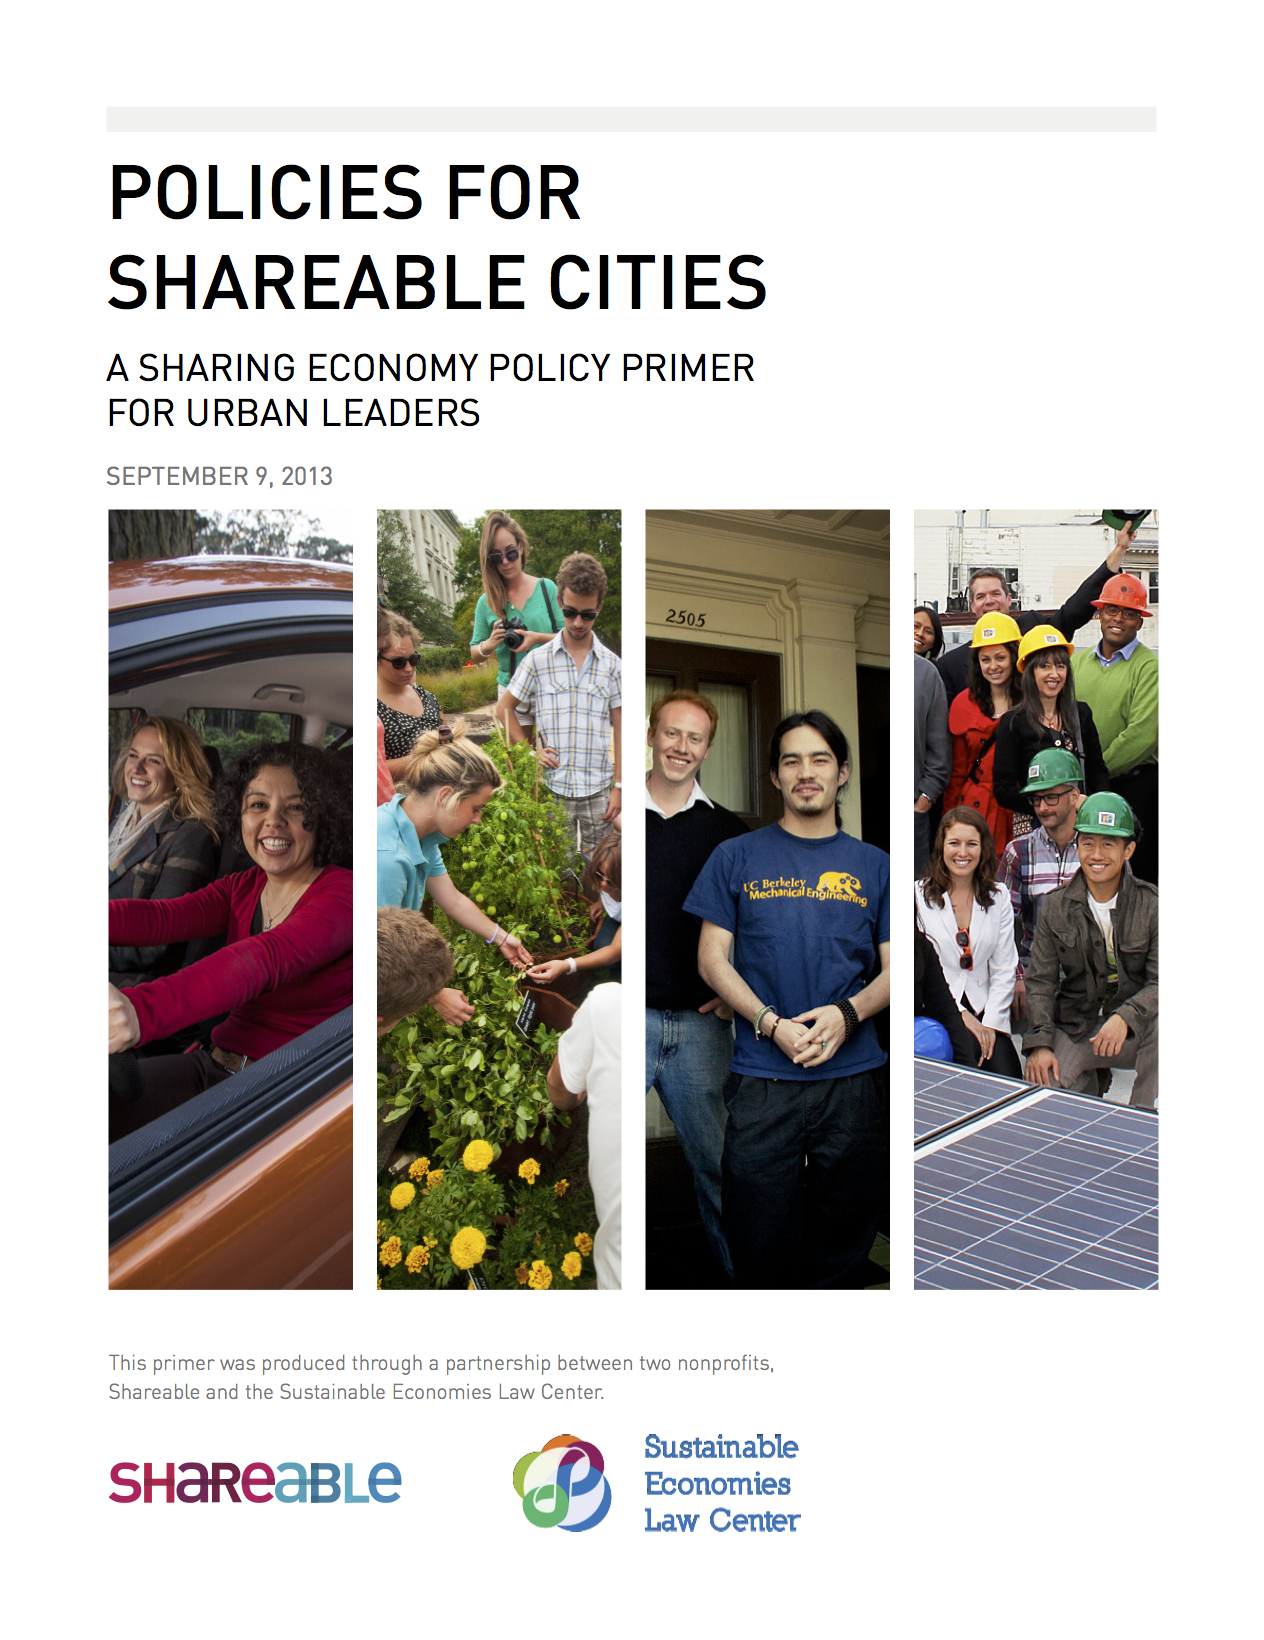 Policies_for_Shareable_Cities_Cover_copy.jpg